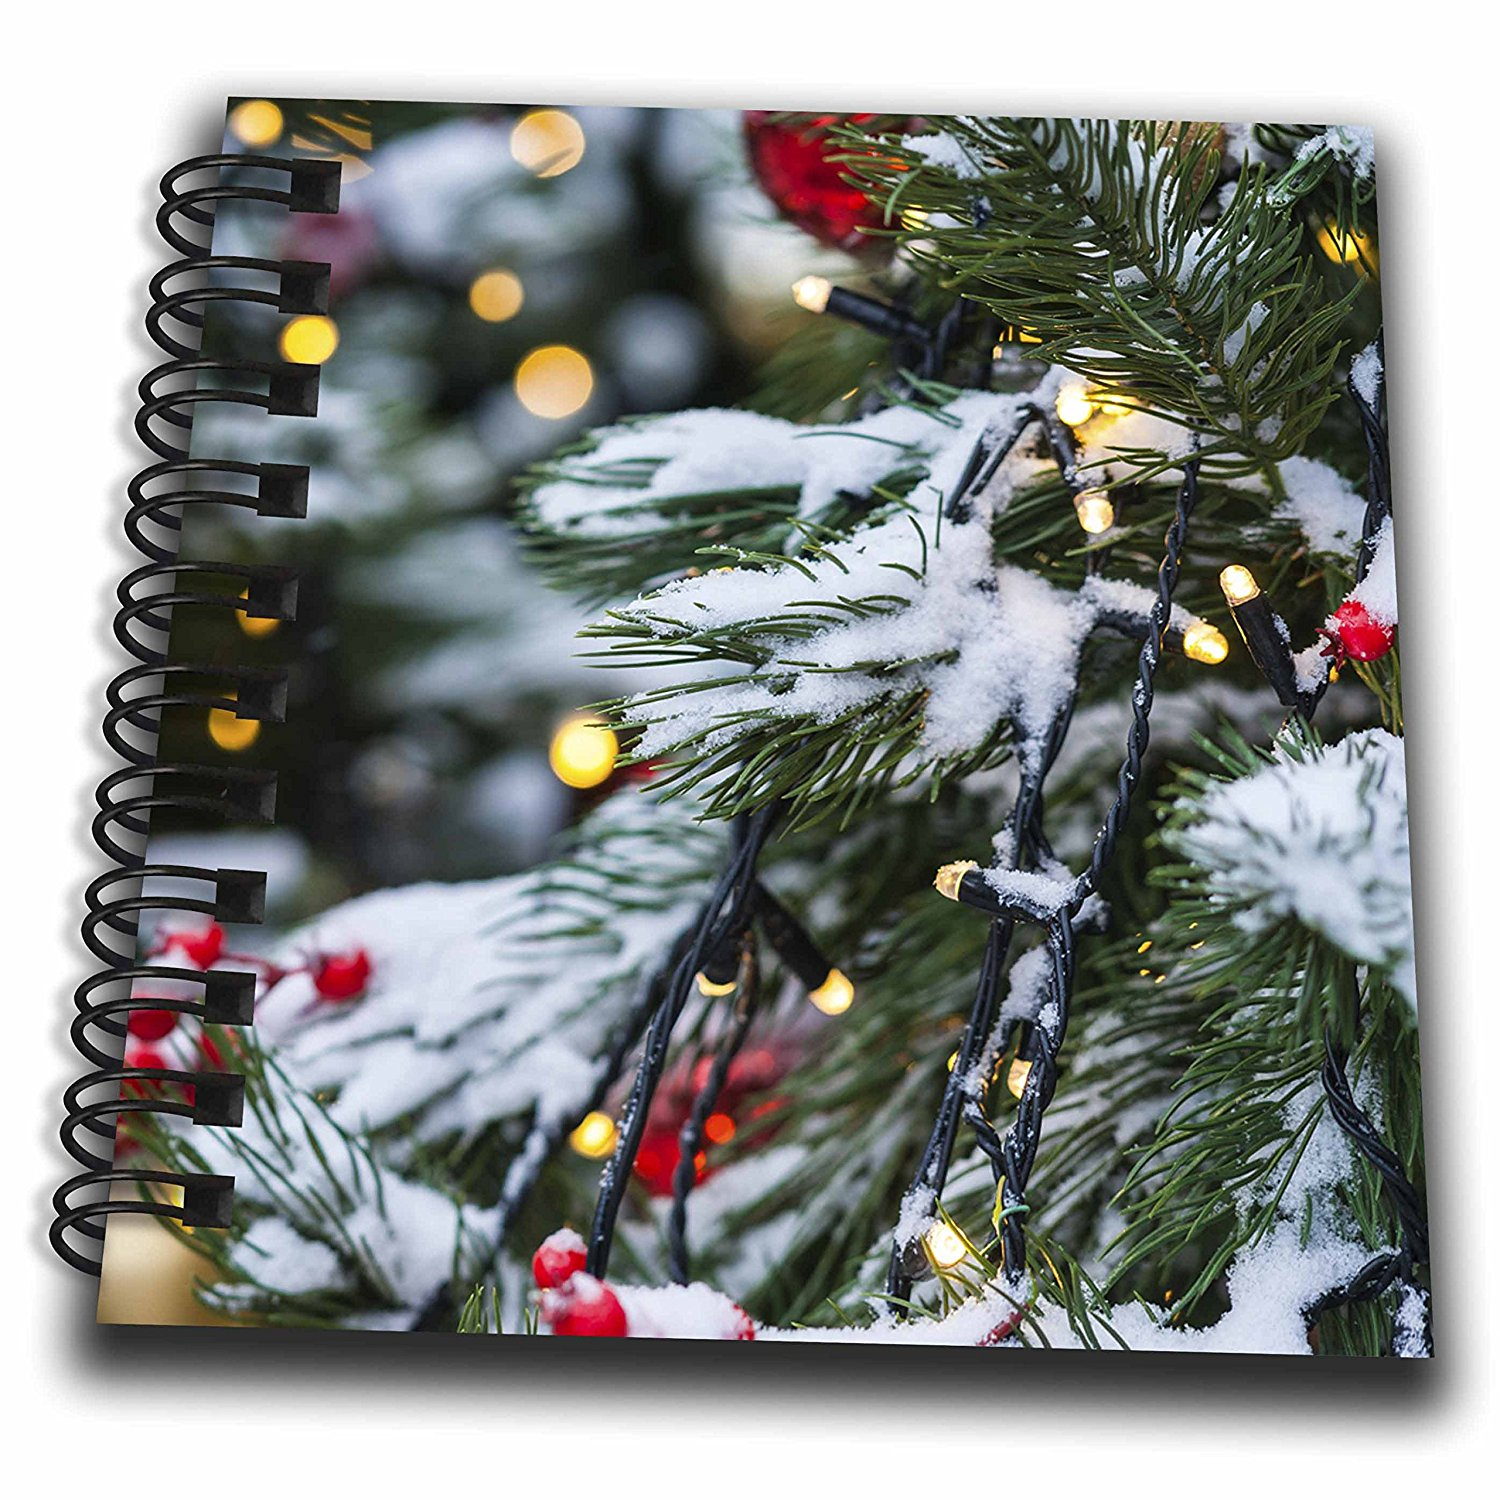 3dRose Alexis Photography - Holidays Christmas - Christmas tree outdoor, snow, needles, lights, toys. Winter joy - Mini Notepad 4 x 4 inch (db_275970_3)